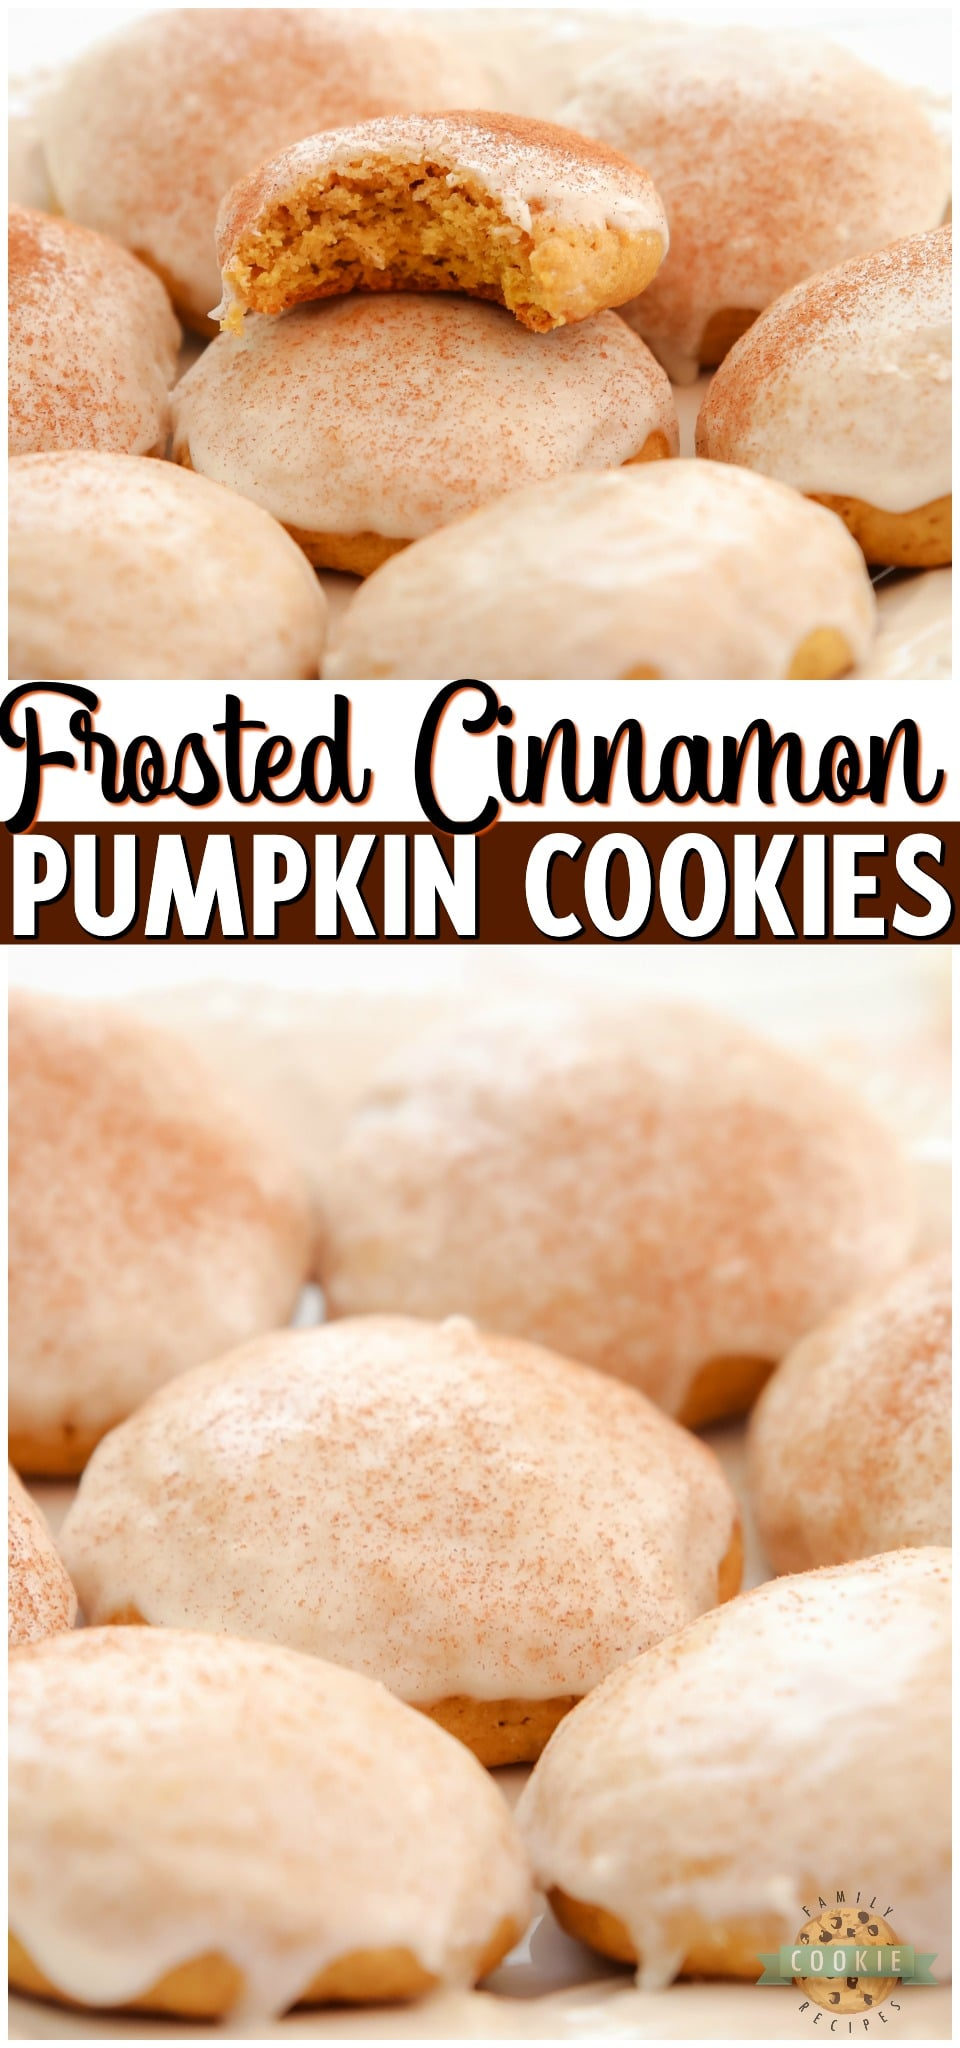 Iced Cinnamon Pumpkin Cookies are soft & pillowy pumpkin cookies topped with a simple vanilla icing and cinnamon. Lovely texture & flavor in these homemade pumpkin sugar cookies.